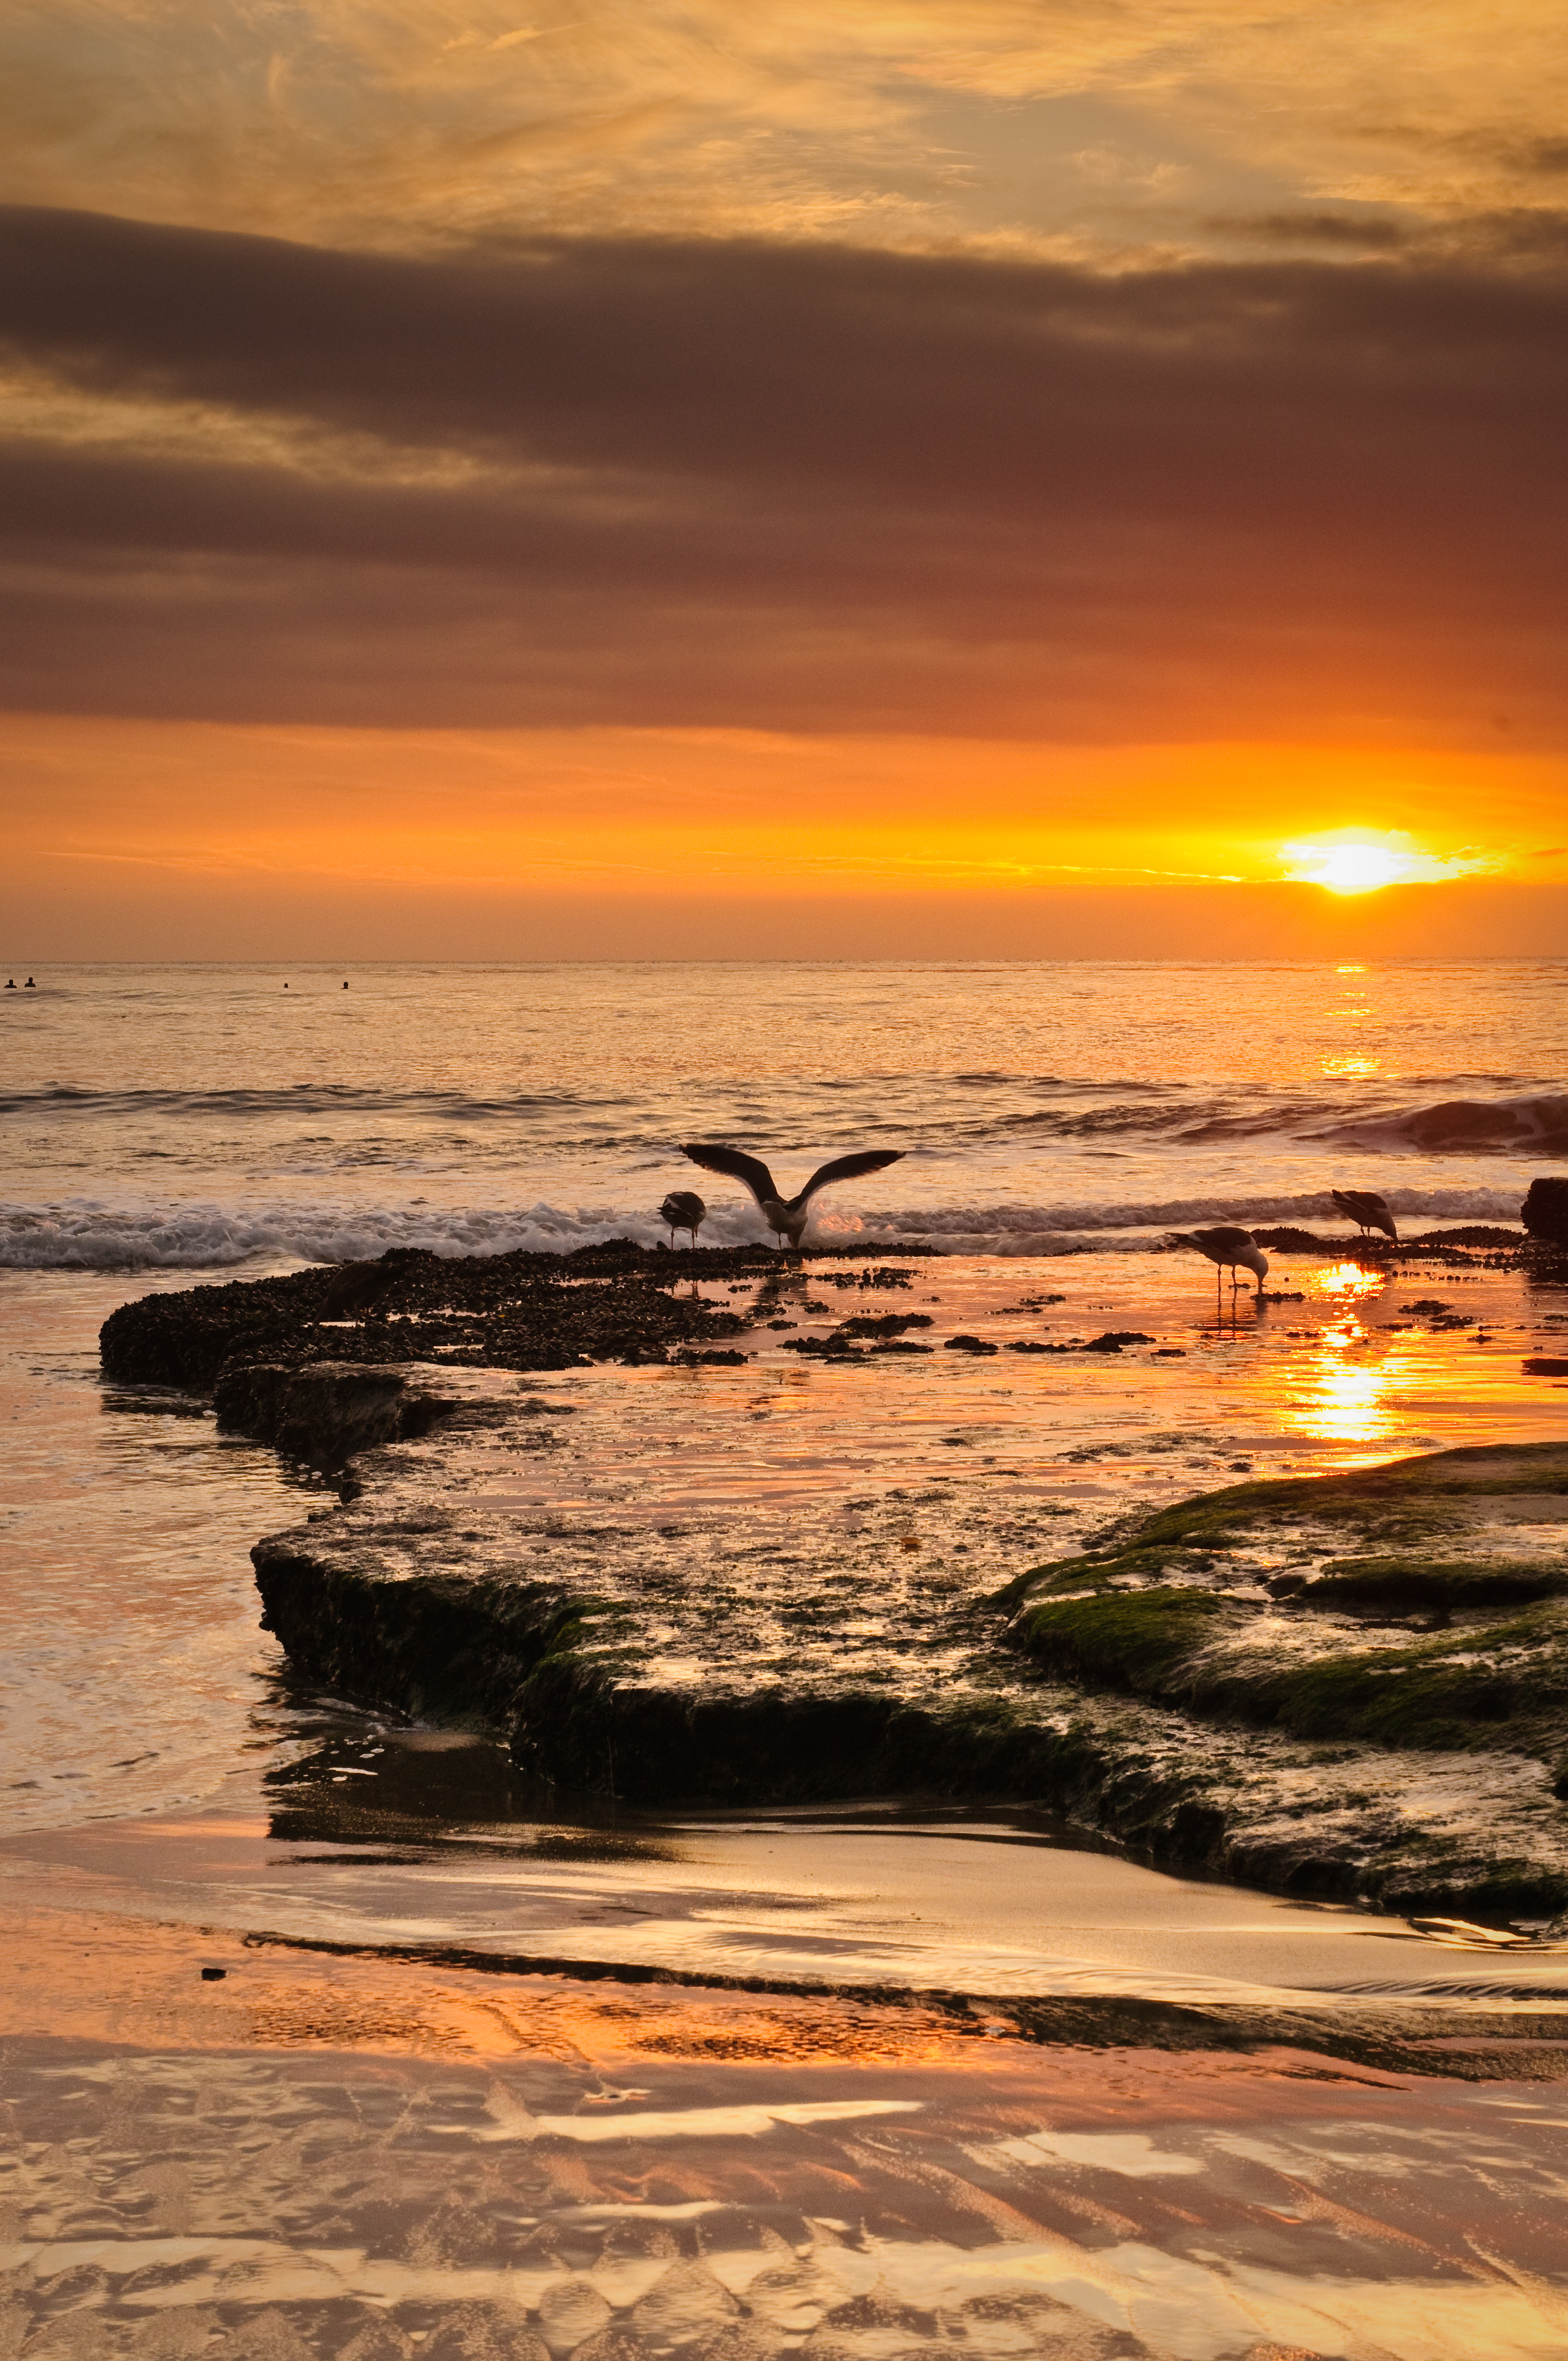 133399 download wallpaper Nature, Sea, Sunset, Coast, Waves, Birds, Seagulls screensavers and pictures for free